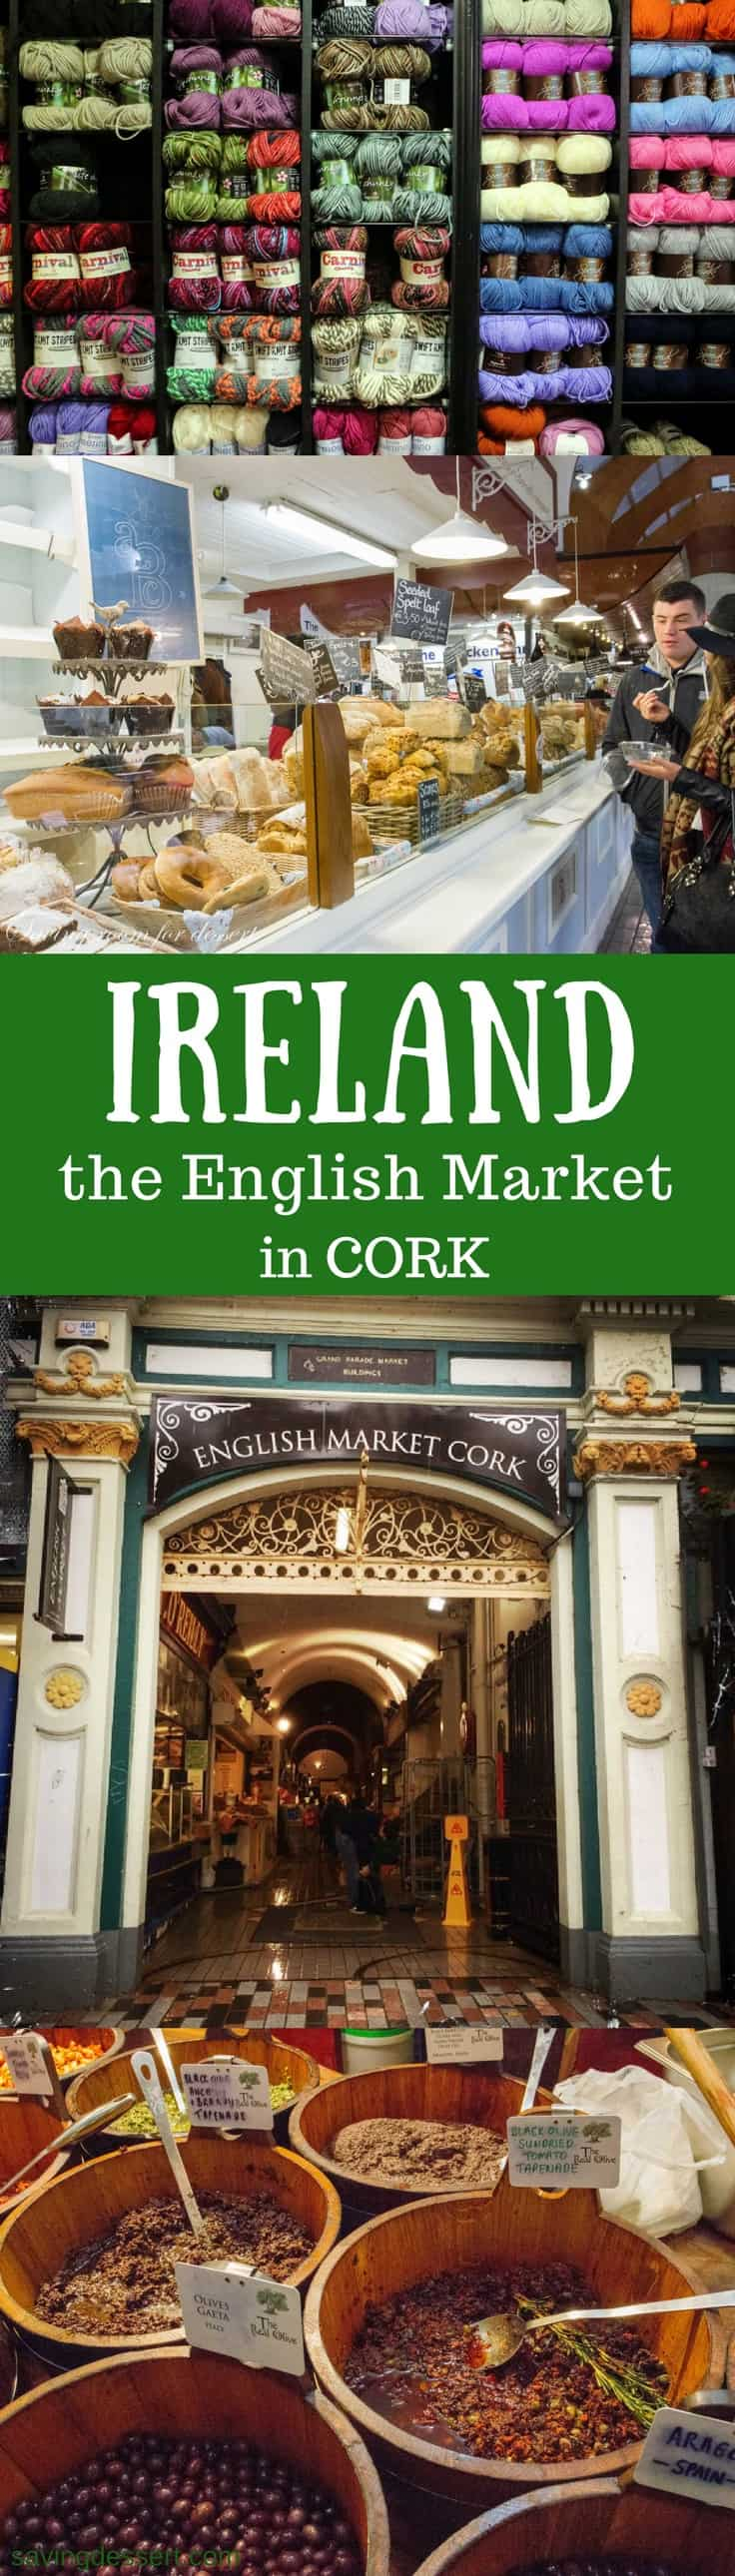 Cork Ireland - The Cork English Market has a fascinating history dating as far back as 1786.  That's before the United States had it's first president!  The market officially opened in August of 1788 and continues to thrive today. #savingroomfordessert #ireland #cork #theenglishmarketcork #market #travel www.savingdessert.com